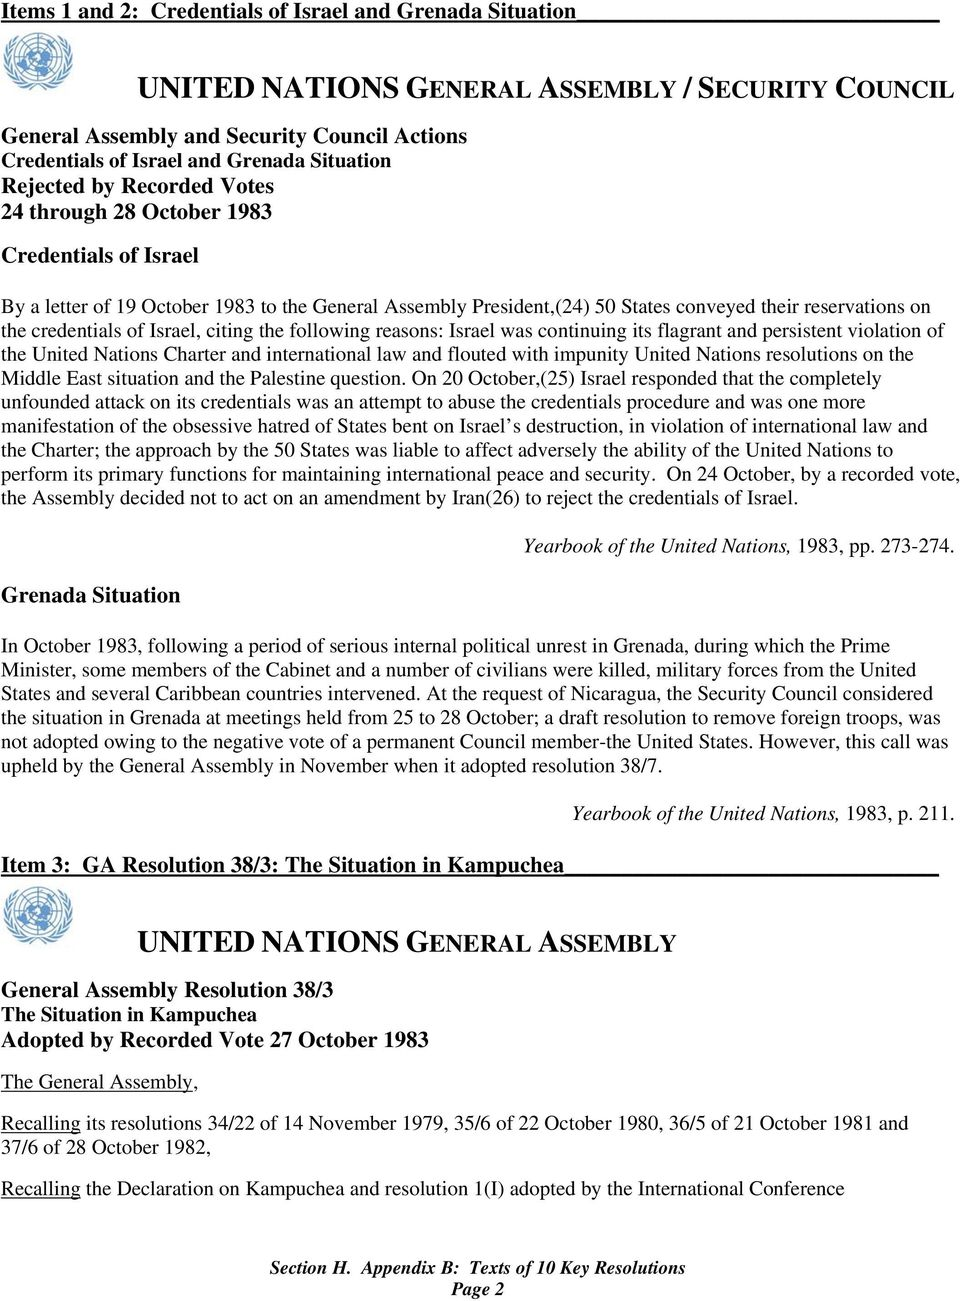 credentials of Israel, citing the following reasons: Israel was continuing its flagrant and persistent violation of the United Nations Charter and international law and flouted with impunity United